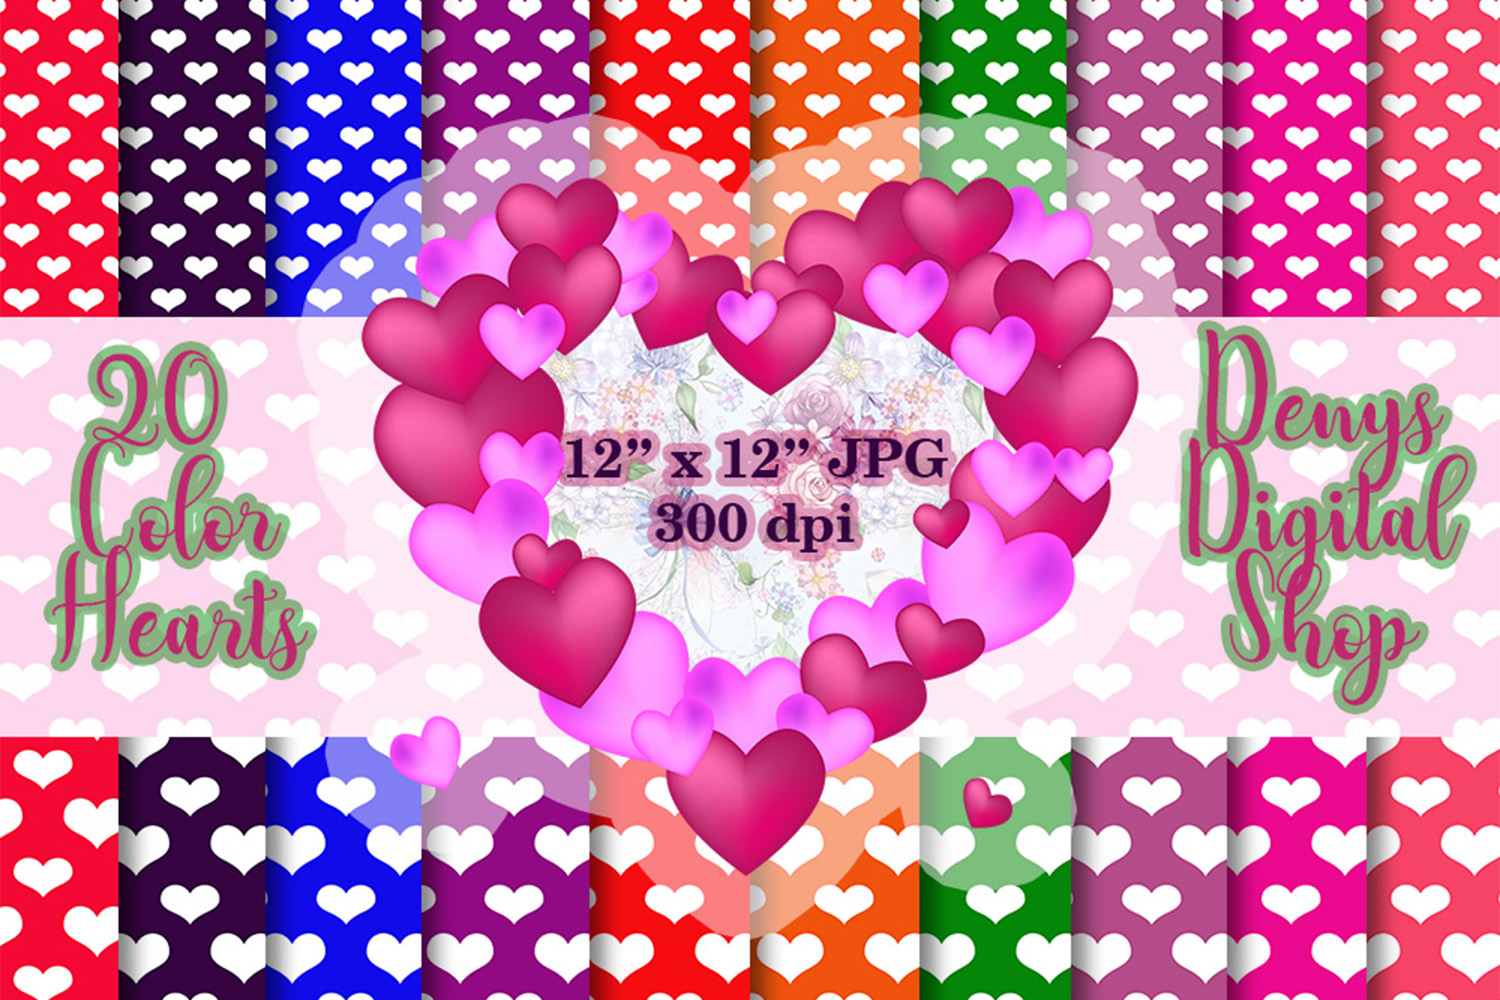 20 Color Heart Papers,Heart Background,Heart Wallpaper, SALE example image 1